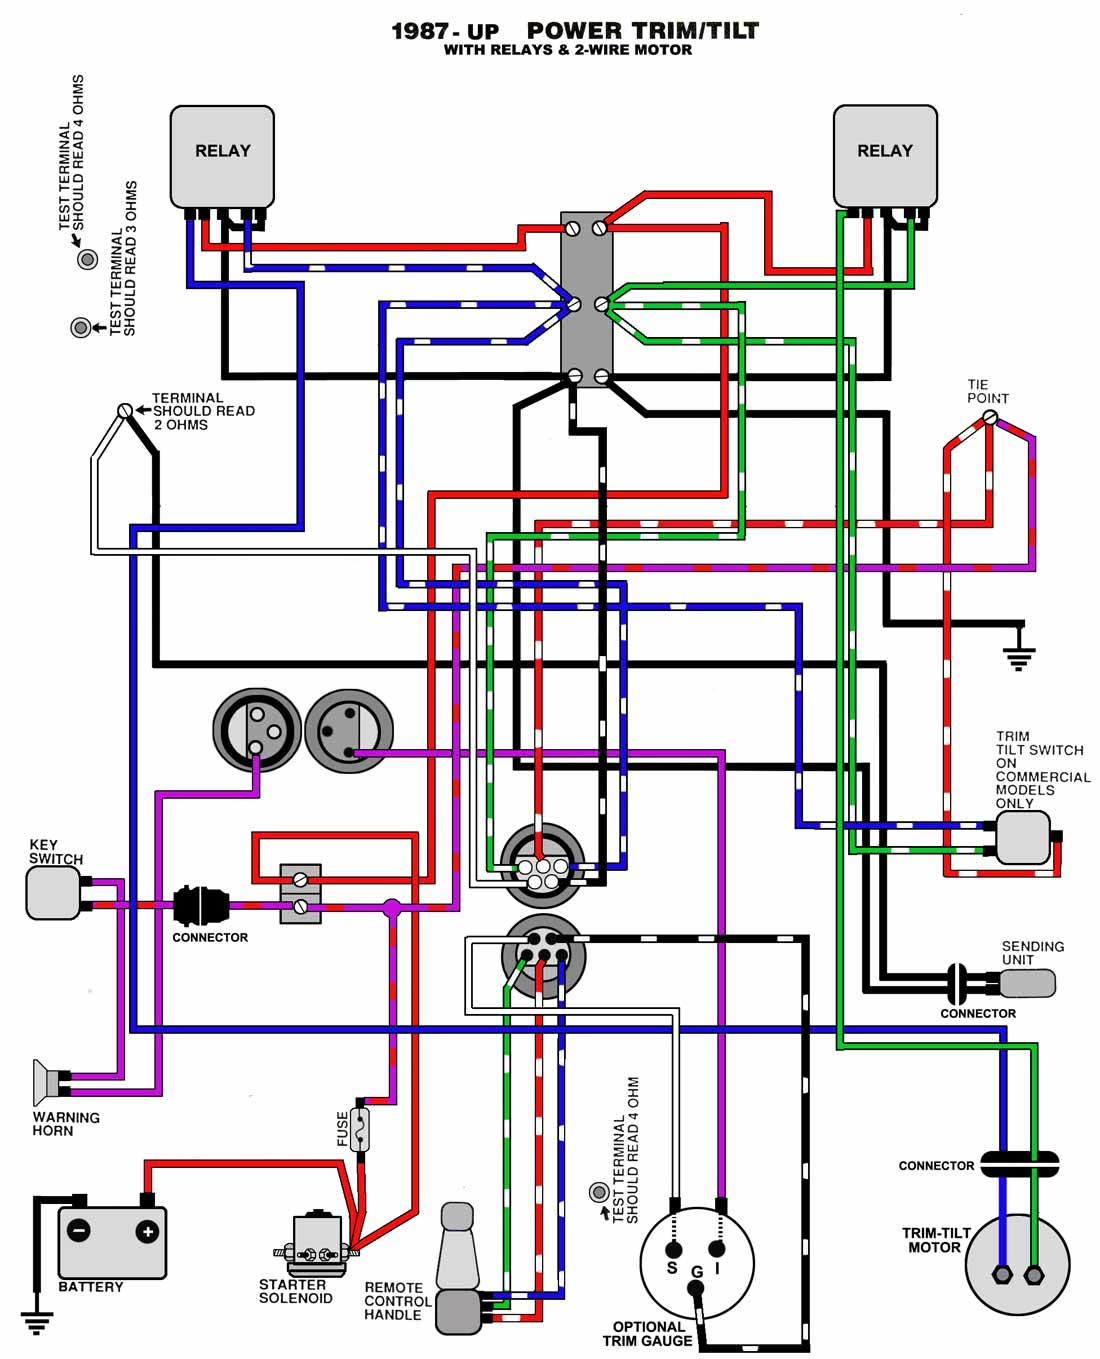 TnT_87_UP mastertech marine evinrude johnson outboard wiring diagrams evinrude key switch wiring diagram at crackthecode.co